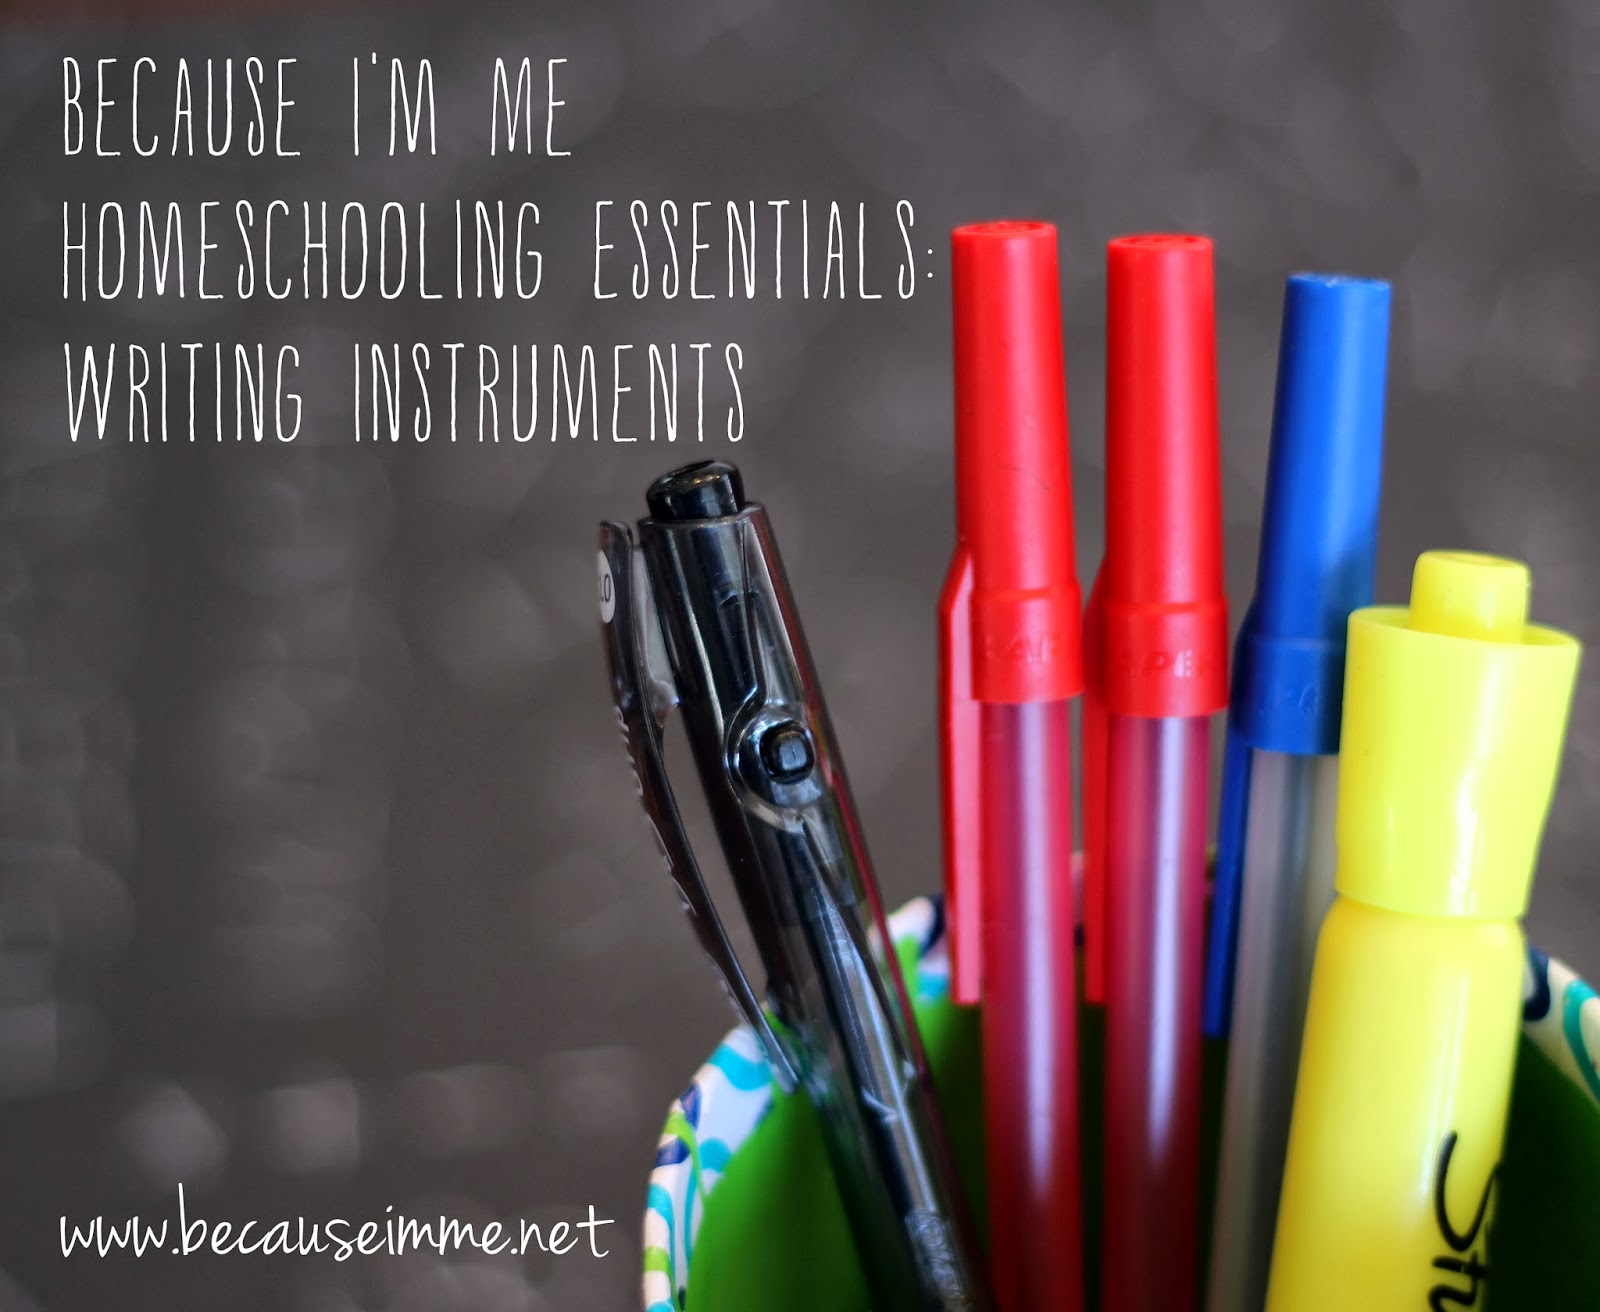 Because I'm Me Homeschooling Essentials: Writing Instruments, sharing what works for a larger homeschooling family